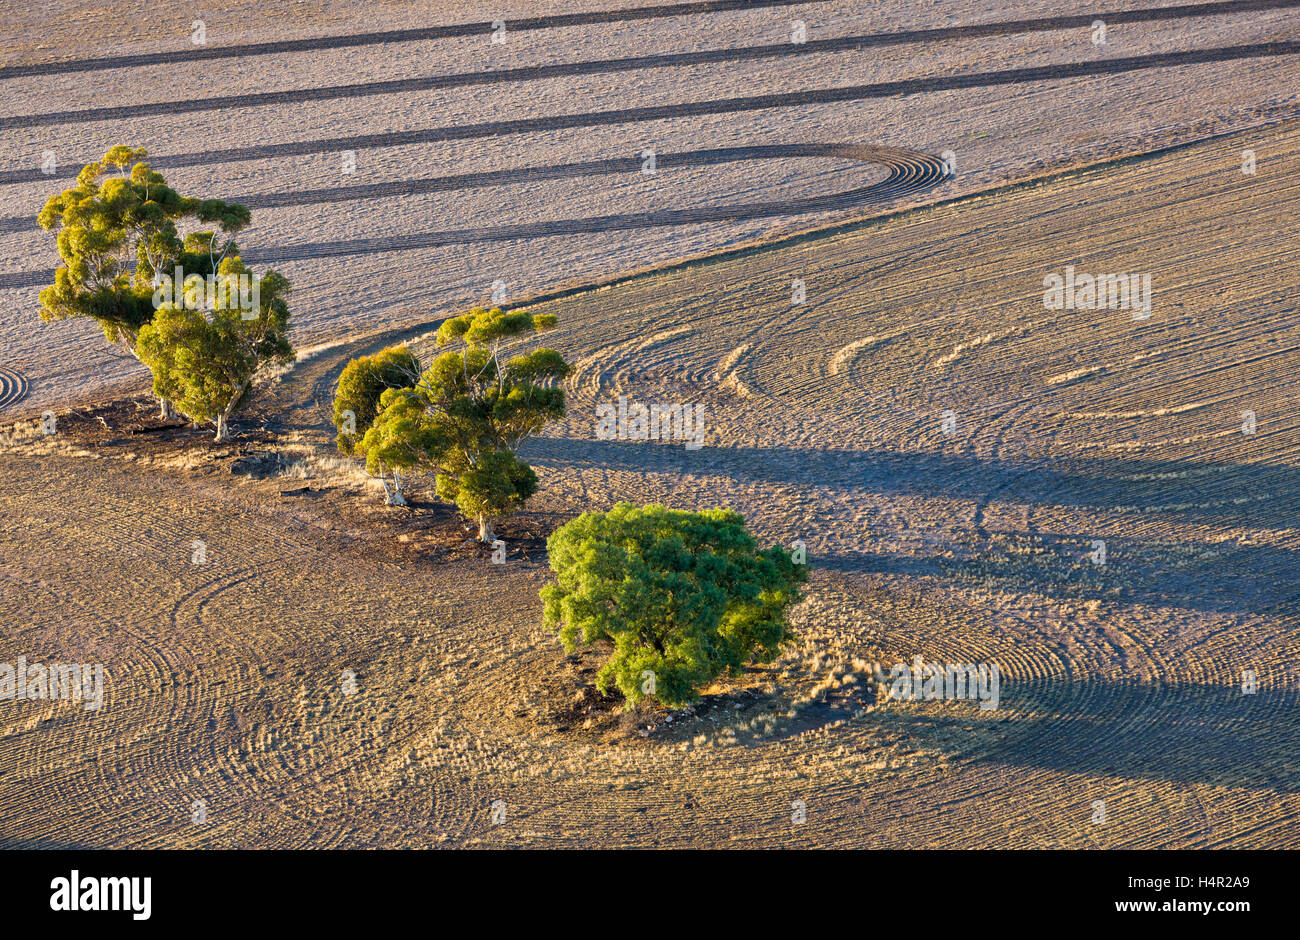 Low altitude aerial photo of trees growing in dryland farming area. - Stock Image